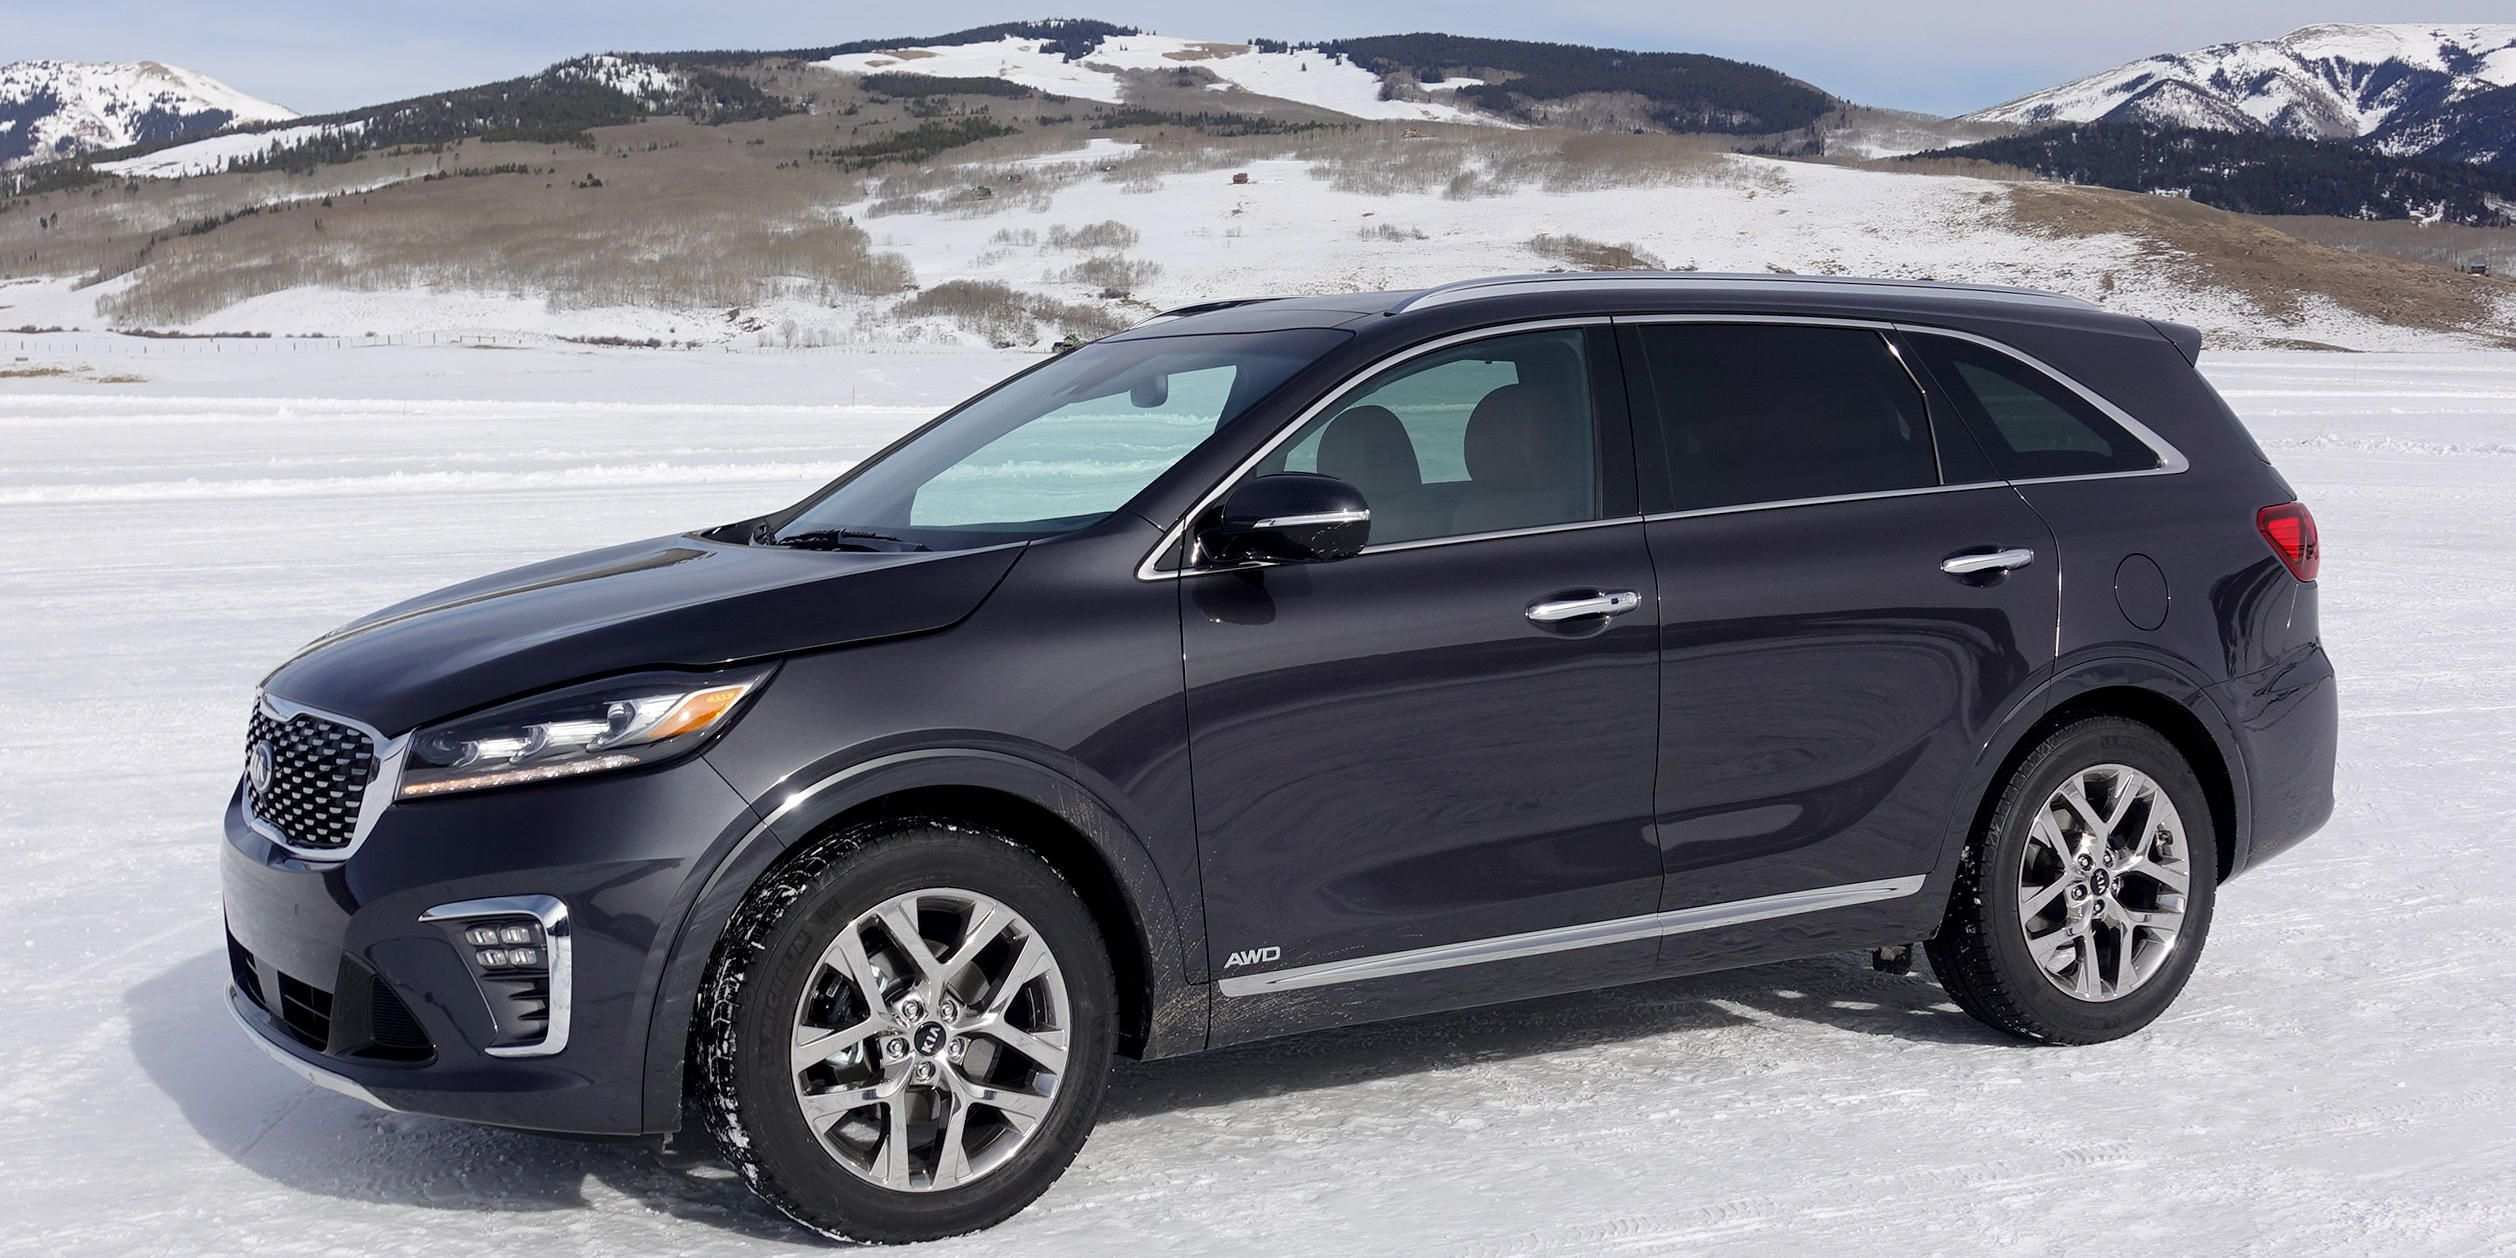 81 Great 2019 Kia Sorento Release Date Reviews with 2019 Kia Sorento Release Date